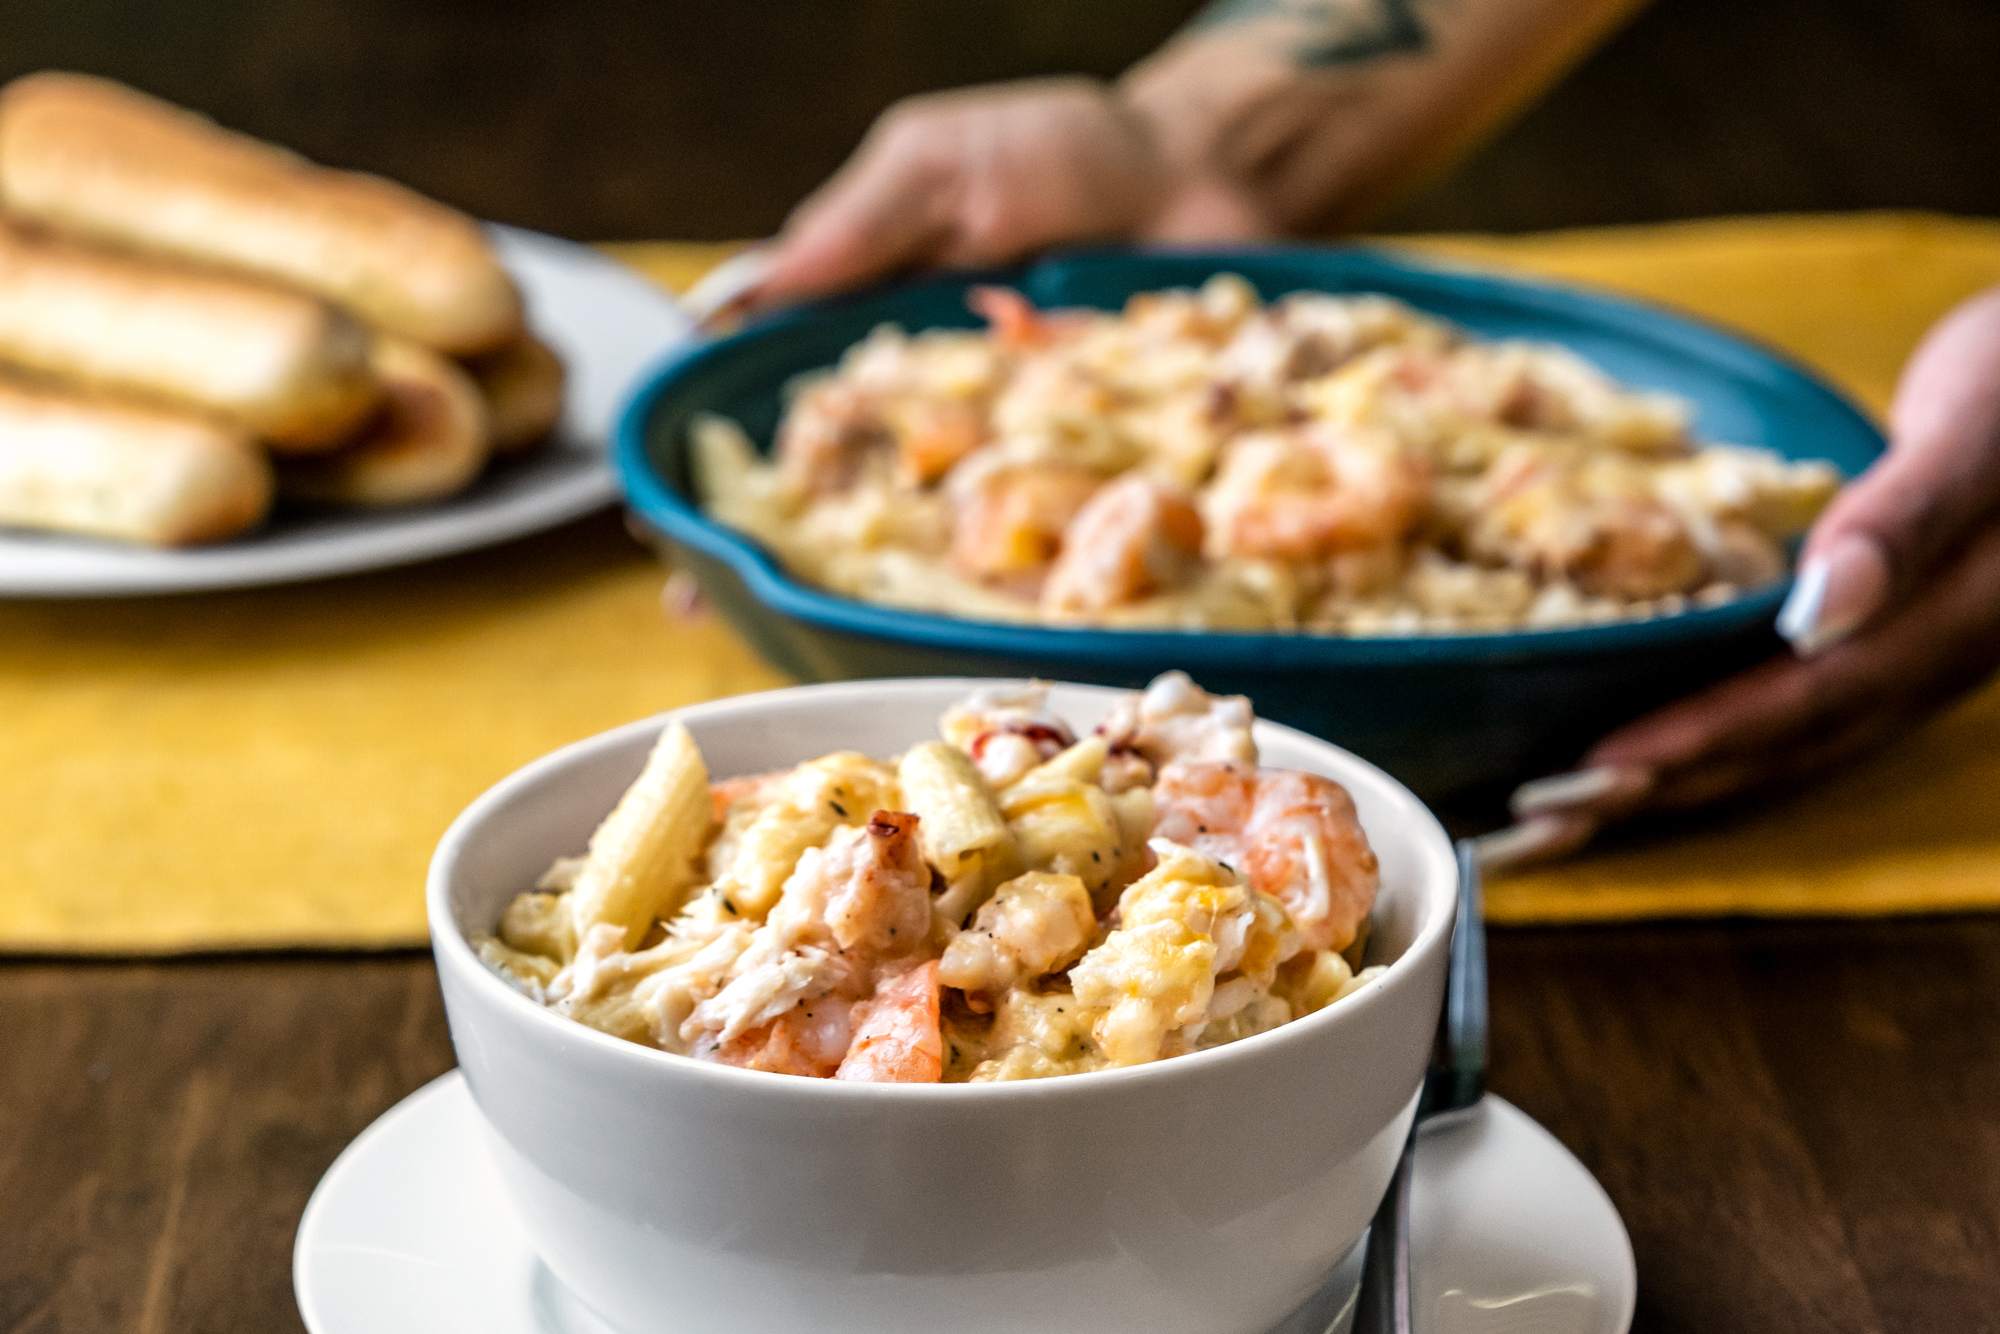 Auntie Monica's Seafood Mac and Cheese